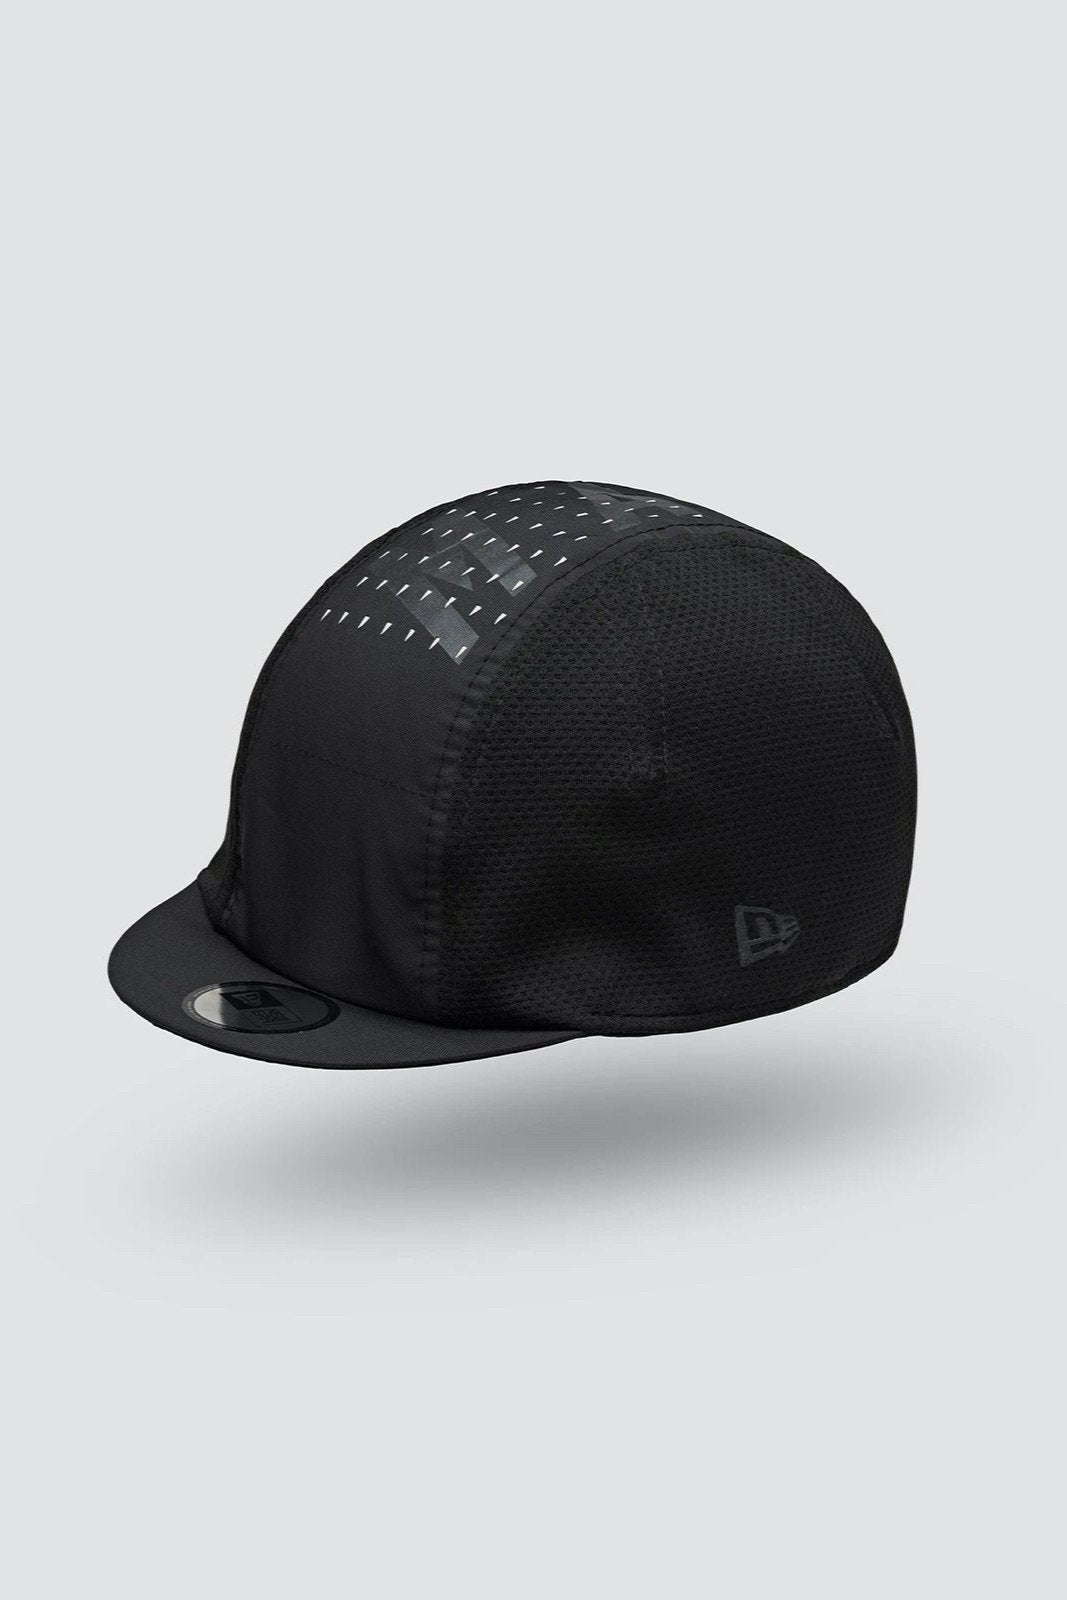 MAAP x New Era Performance Black サイクルキャップ | CYCLISM